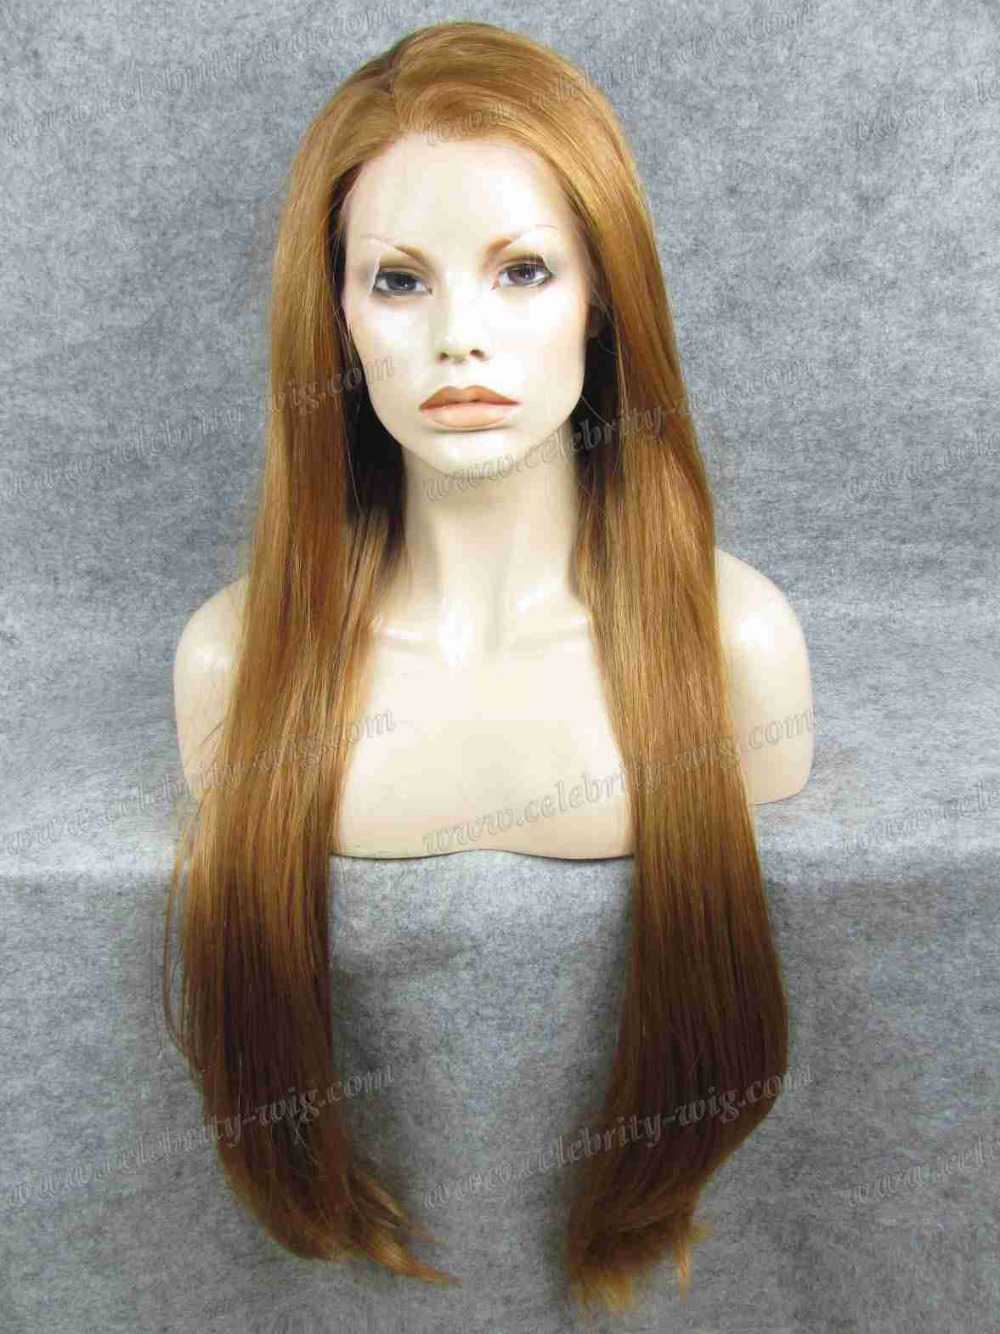 N22-27R 30INCH Long Ginger Blonde Silky Straight Synthetic Lace Front Wig<br><br>Aliexpress